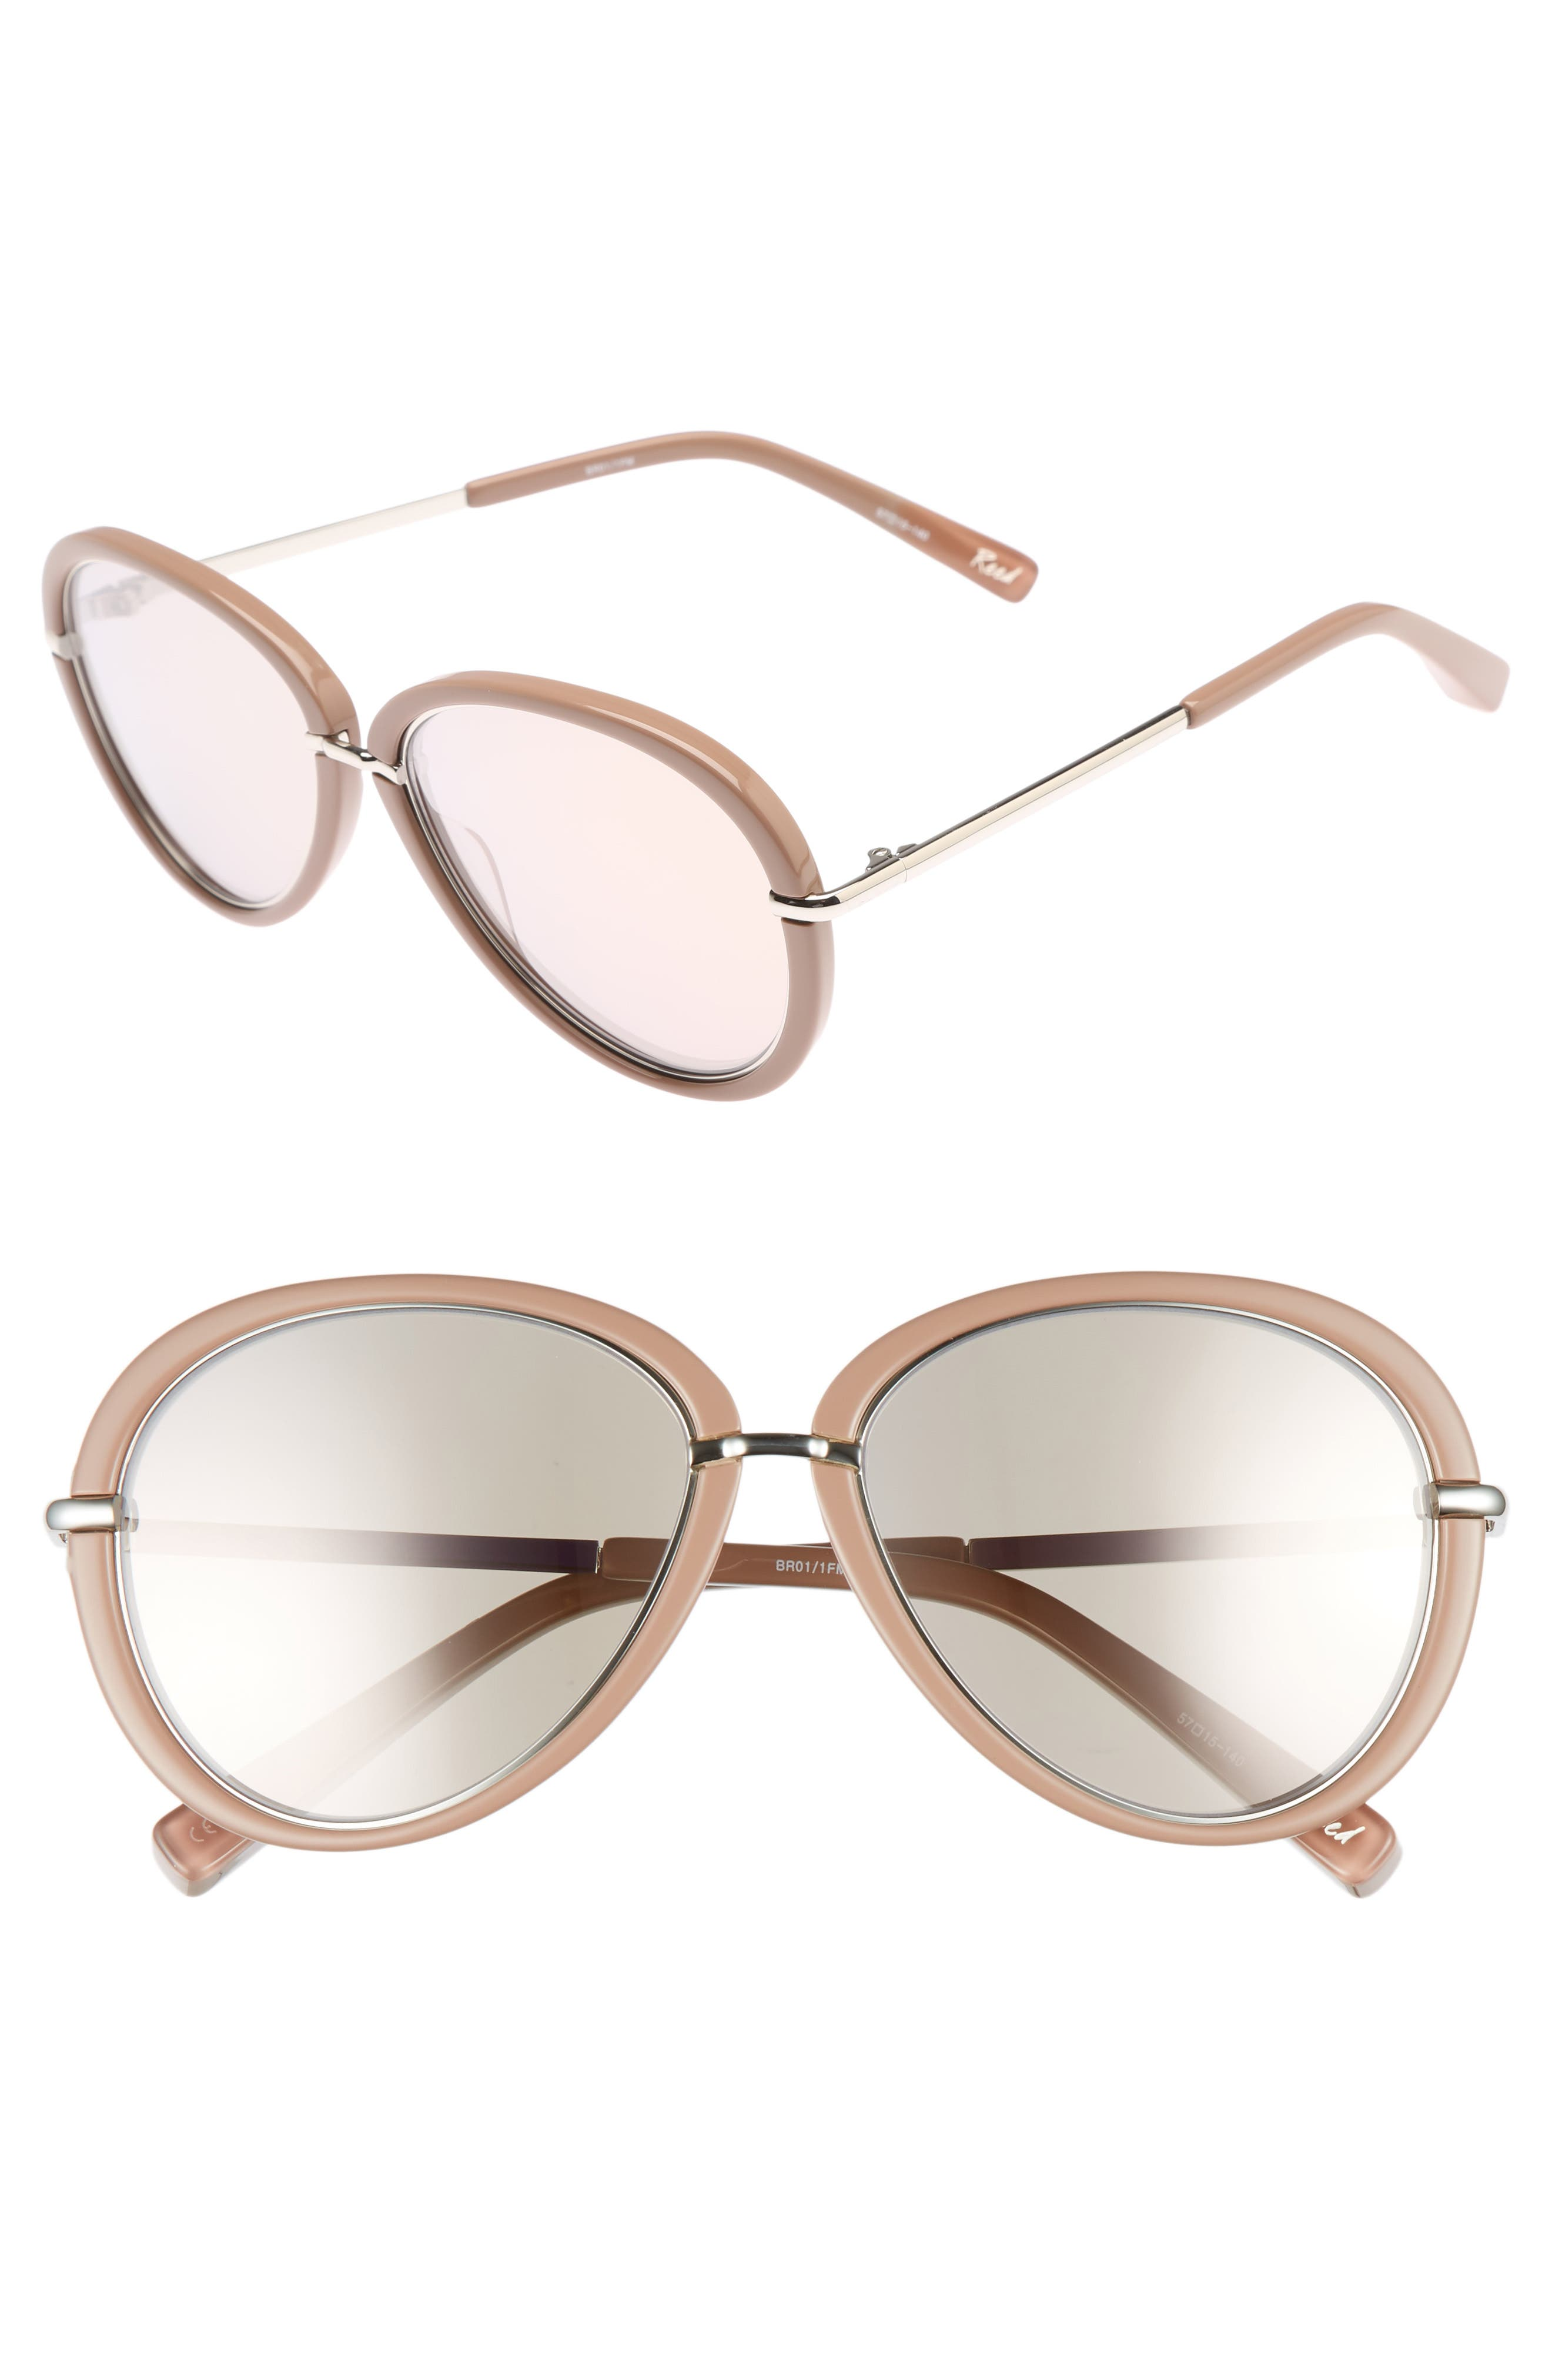 Reed 57mm Aviator Sunglasses,                             Main thumbnail 1, color,